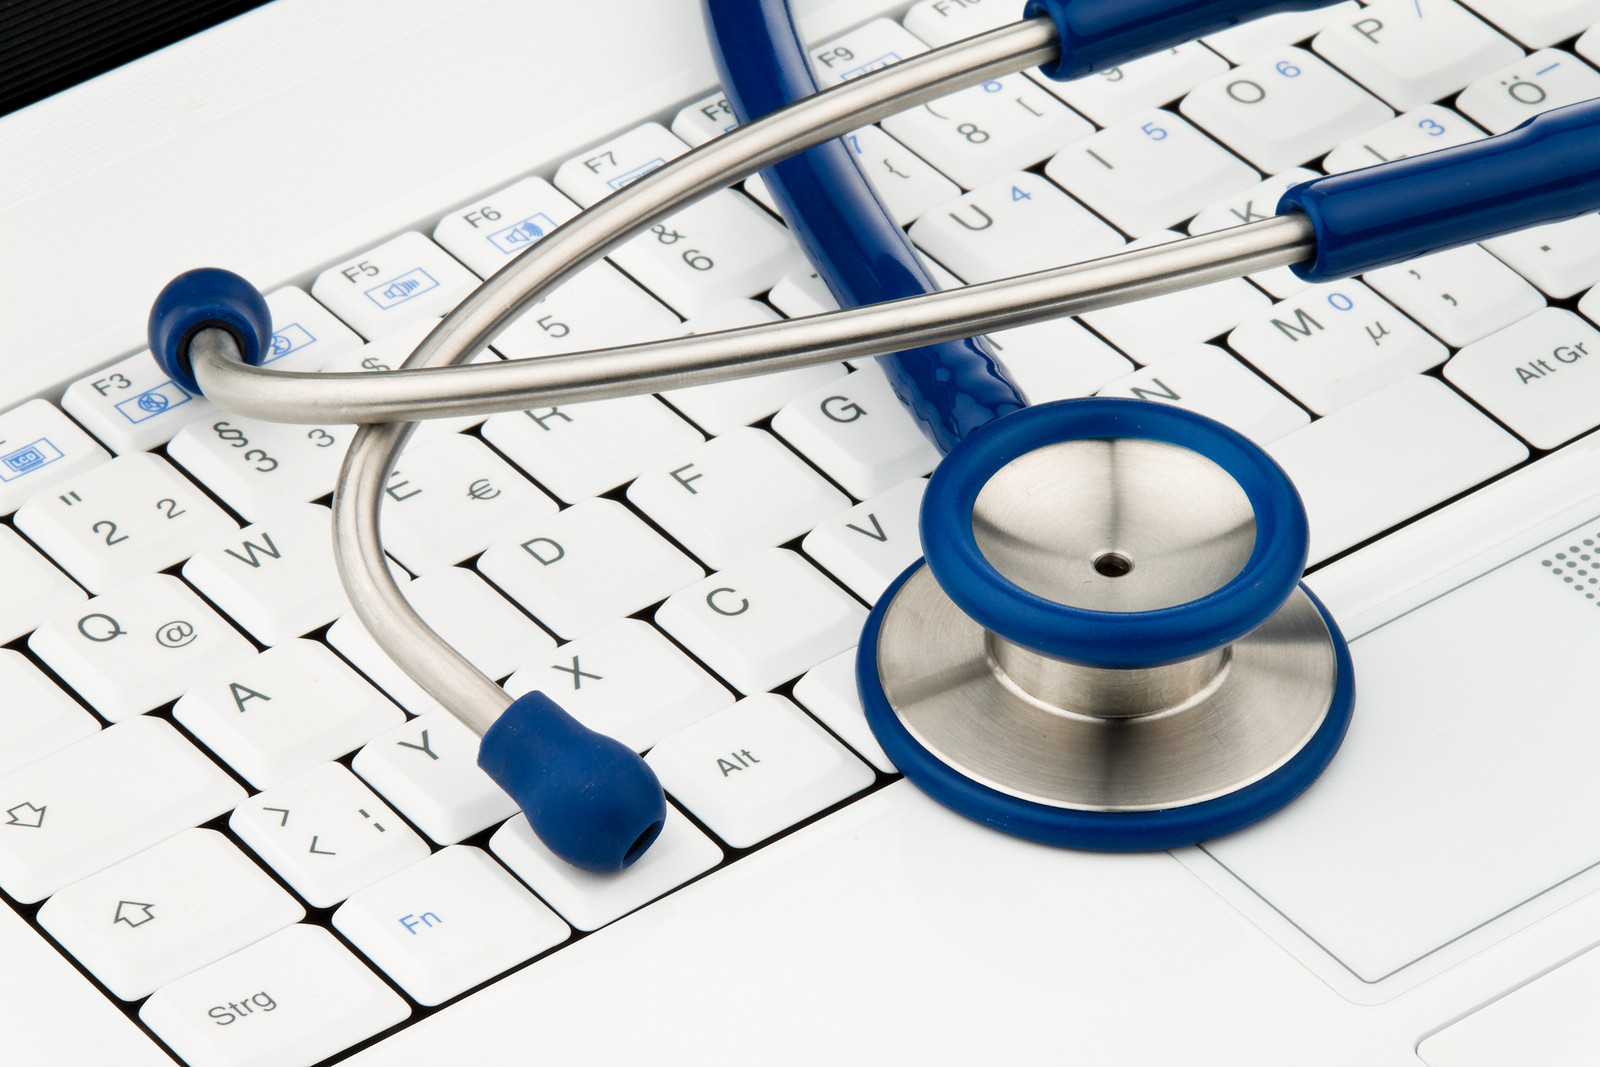 Stethoscope on laptop computer. Security for data on the Internet. Horizontal.